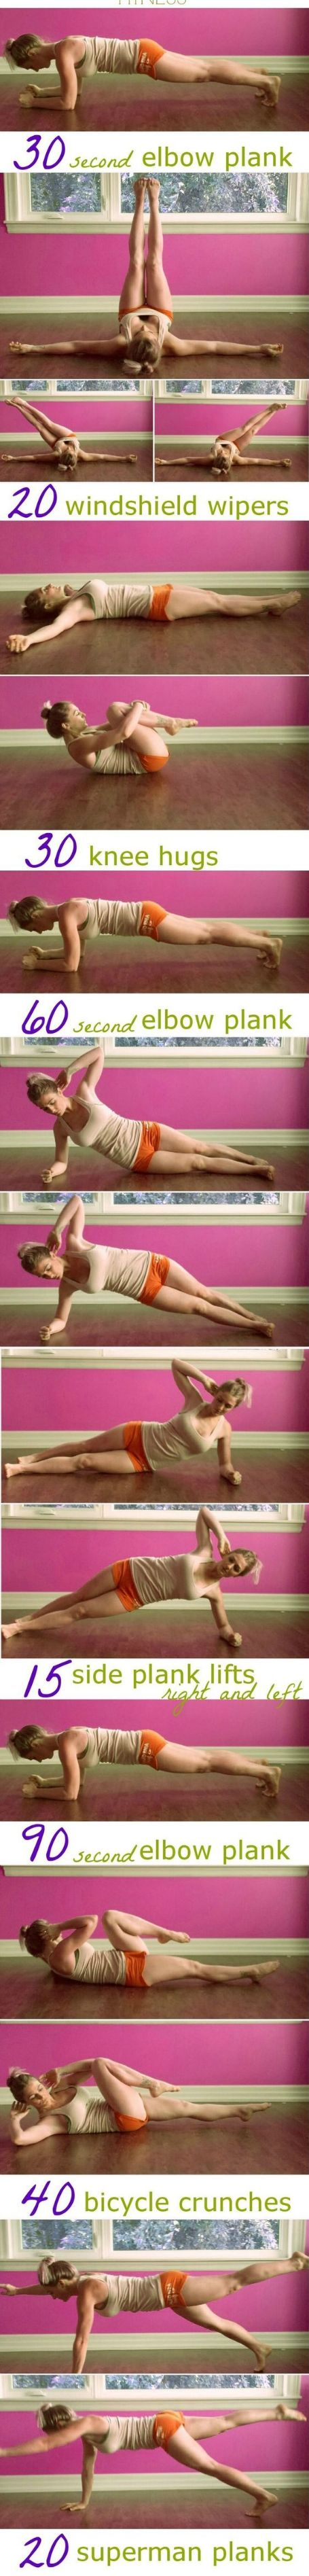 how to get rid of inner thigh fat overnight